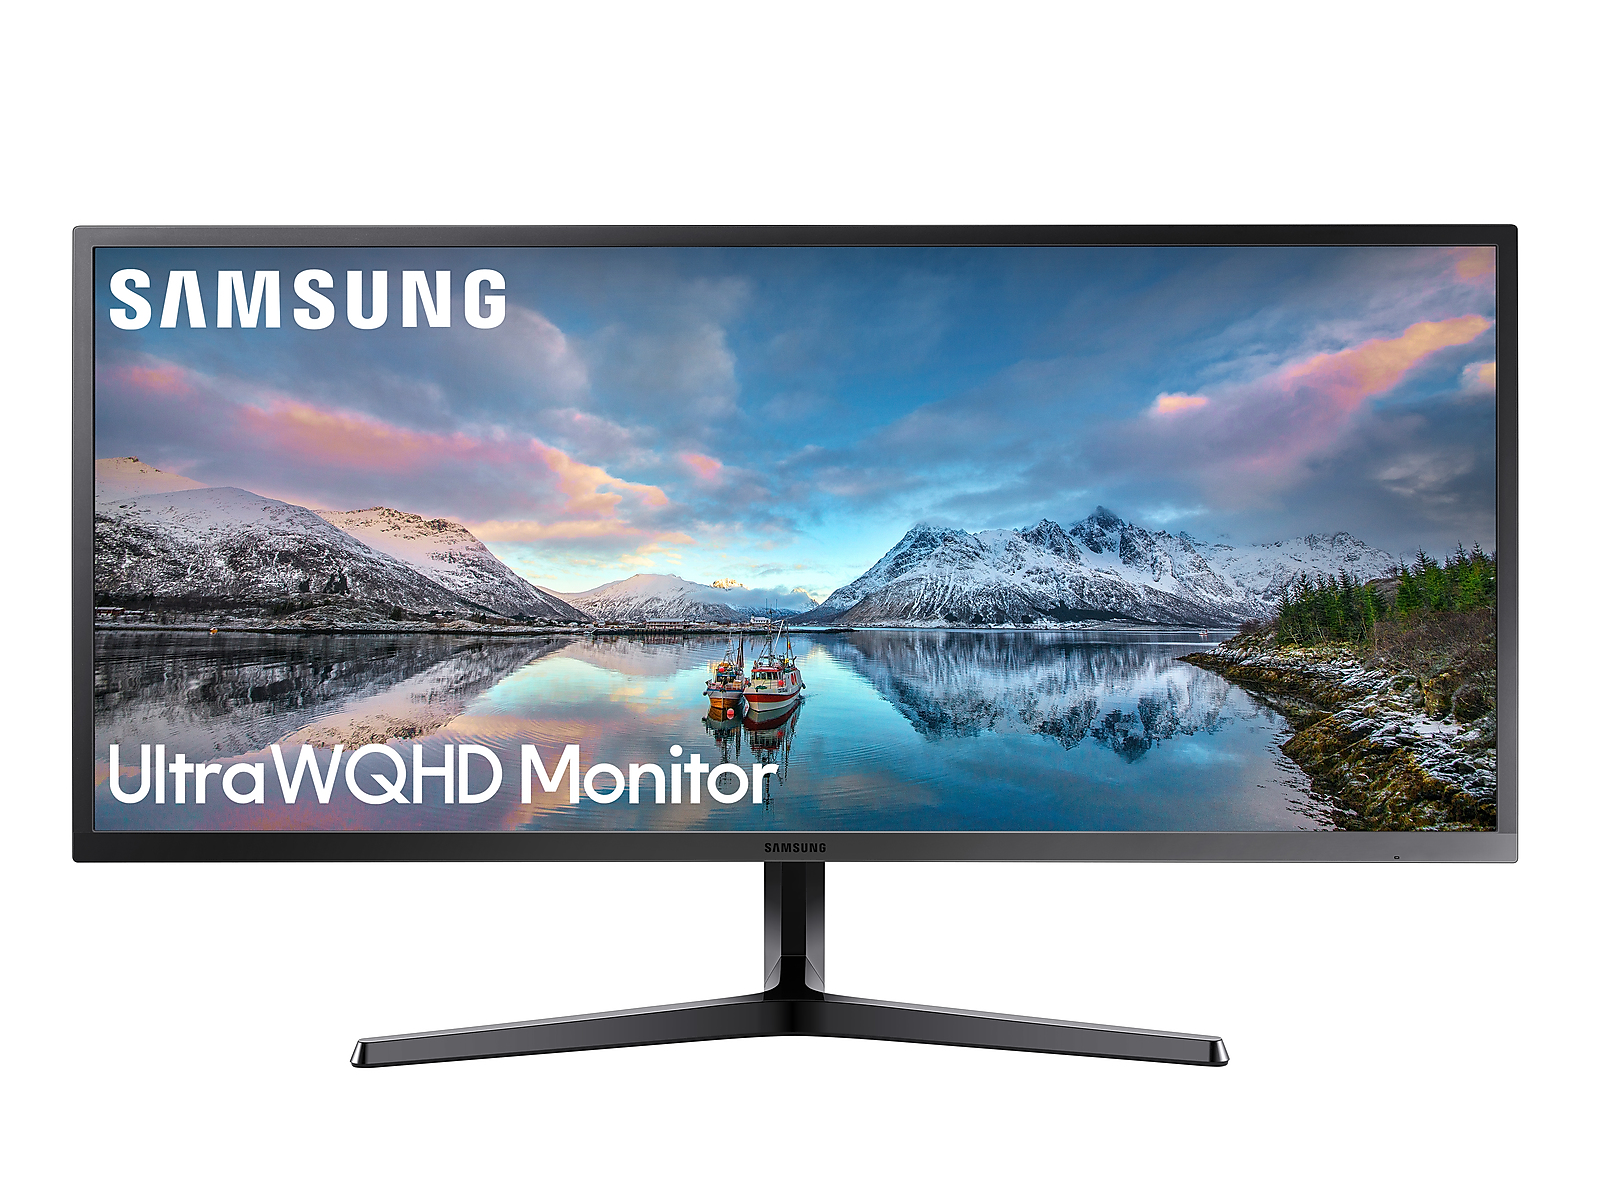 "Samsung 34"" SJ55W Ultra WQHD Monitor in Dark Blue Grey(LS34J550WQNXZA)"